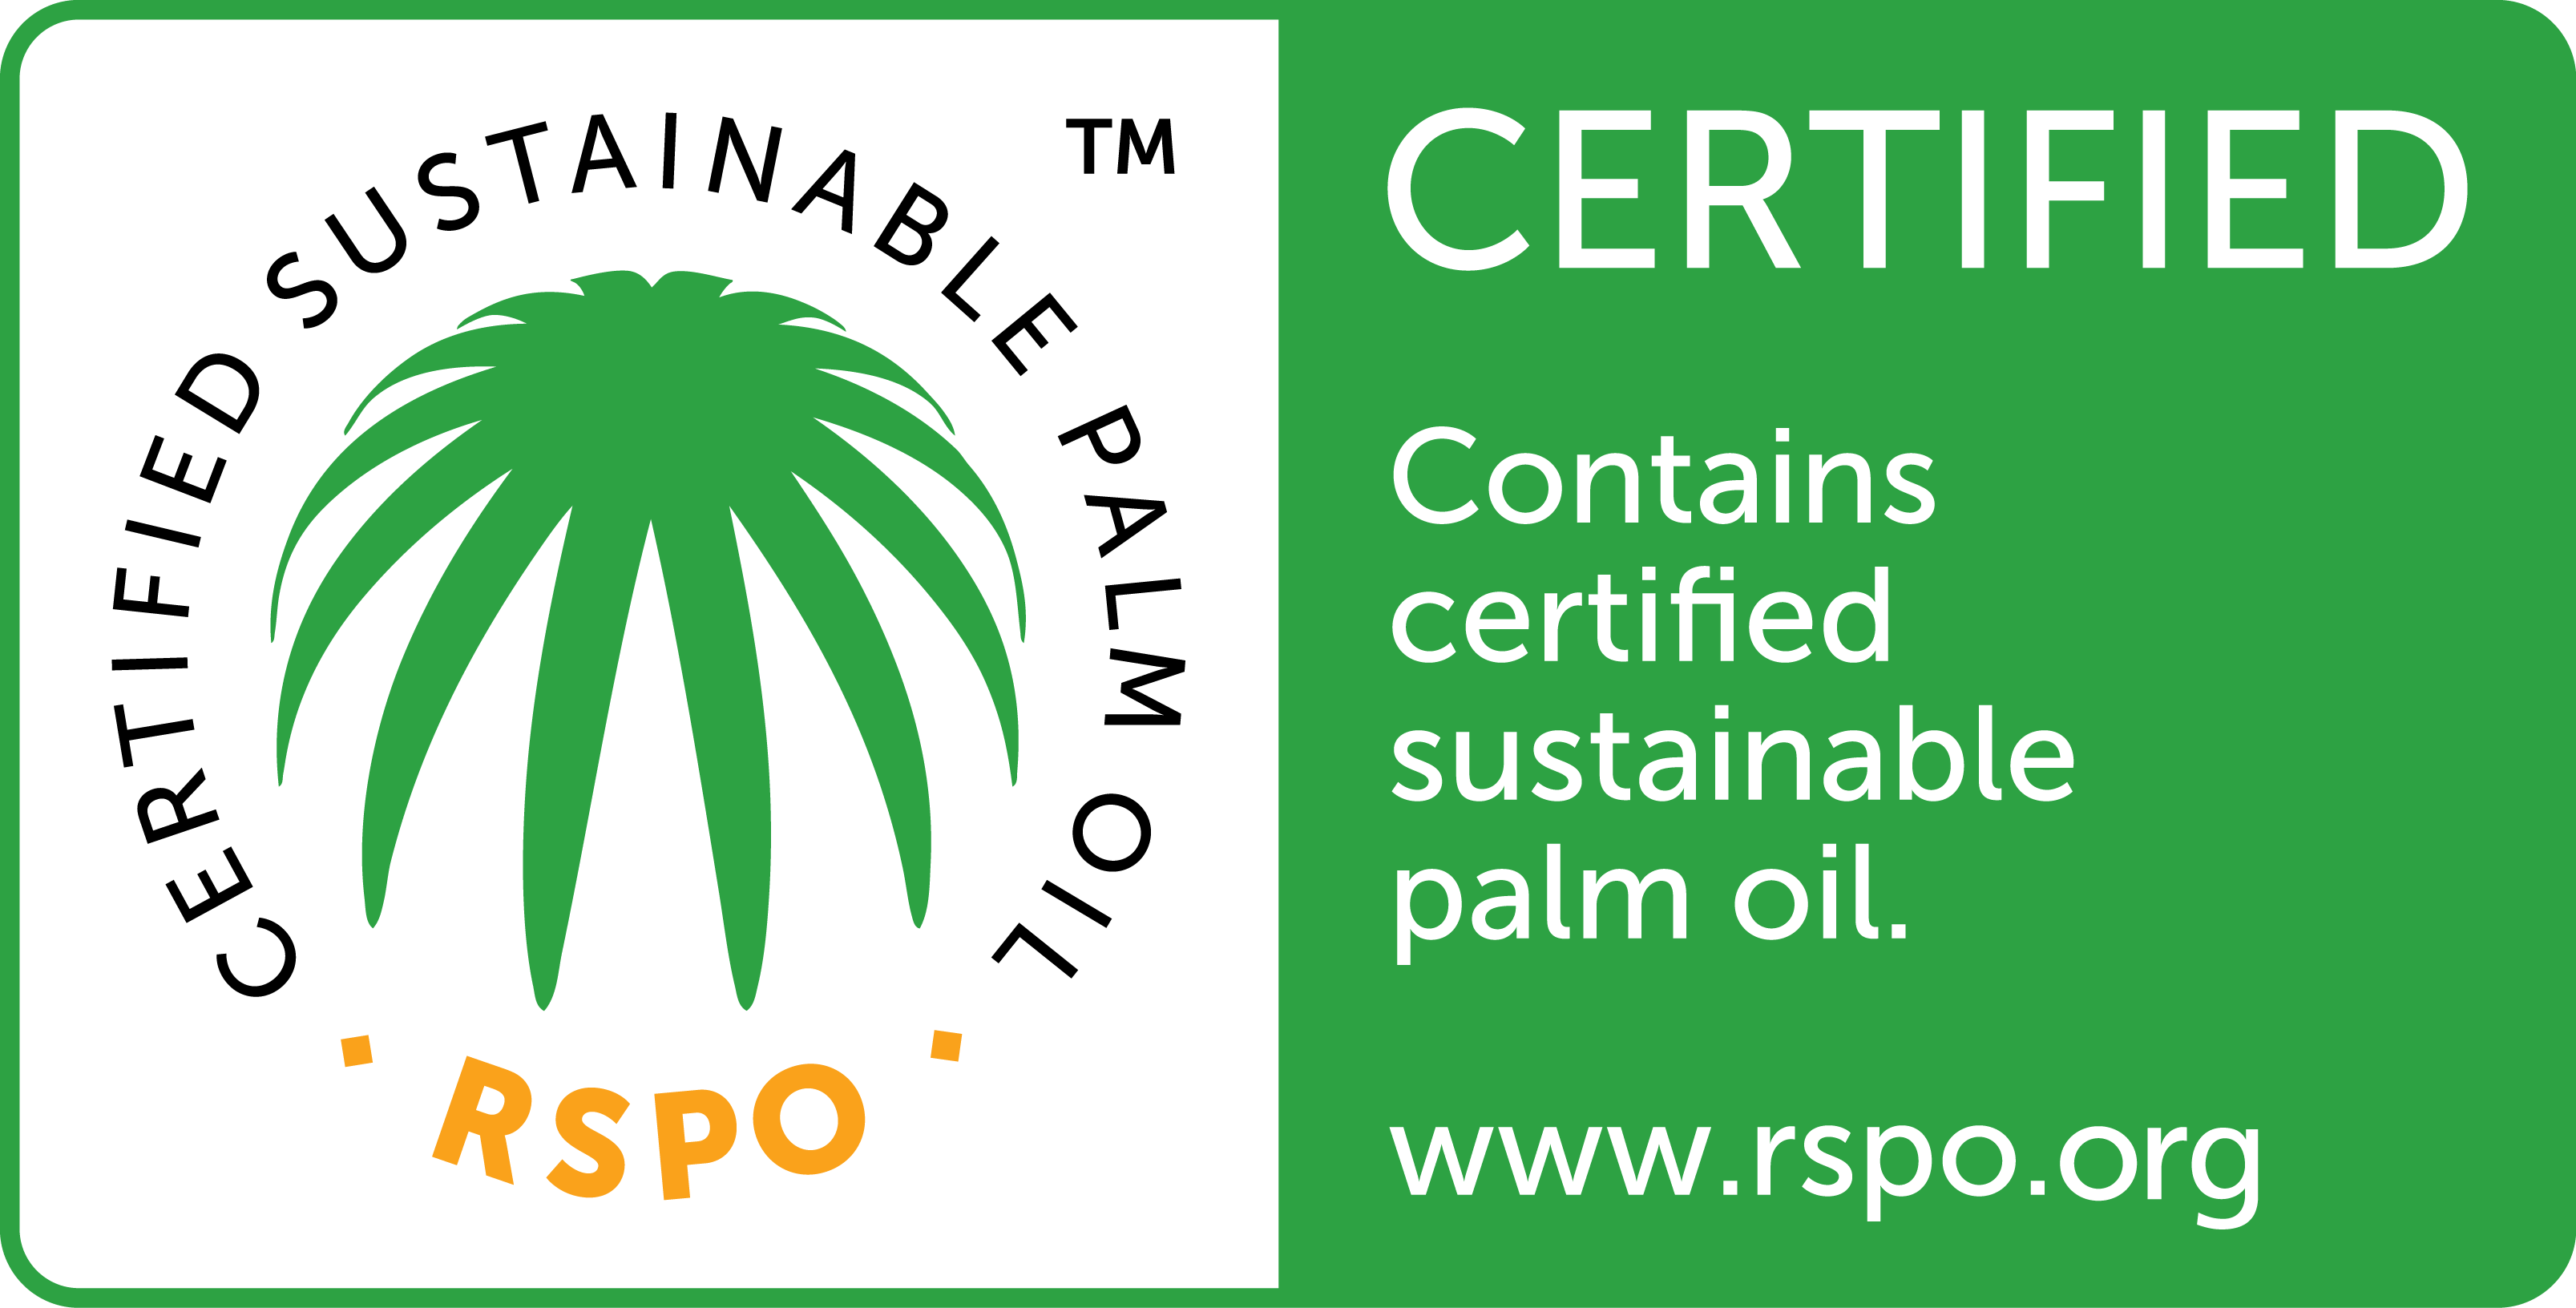 Rspo-TM-EN-SG-7-color-CMYK